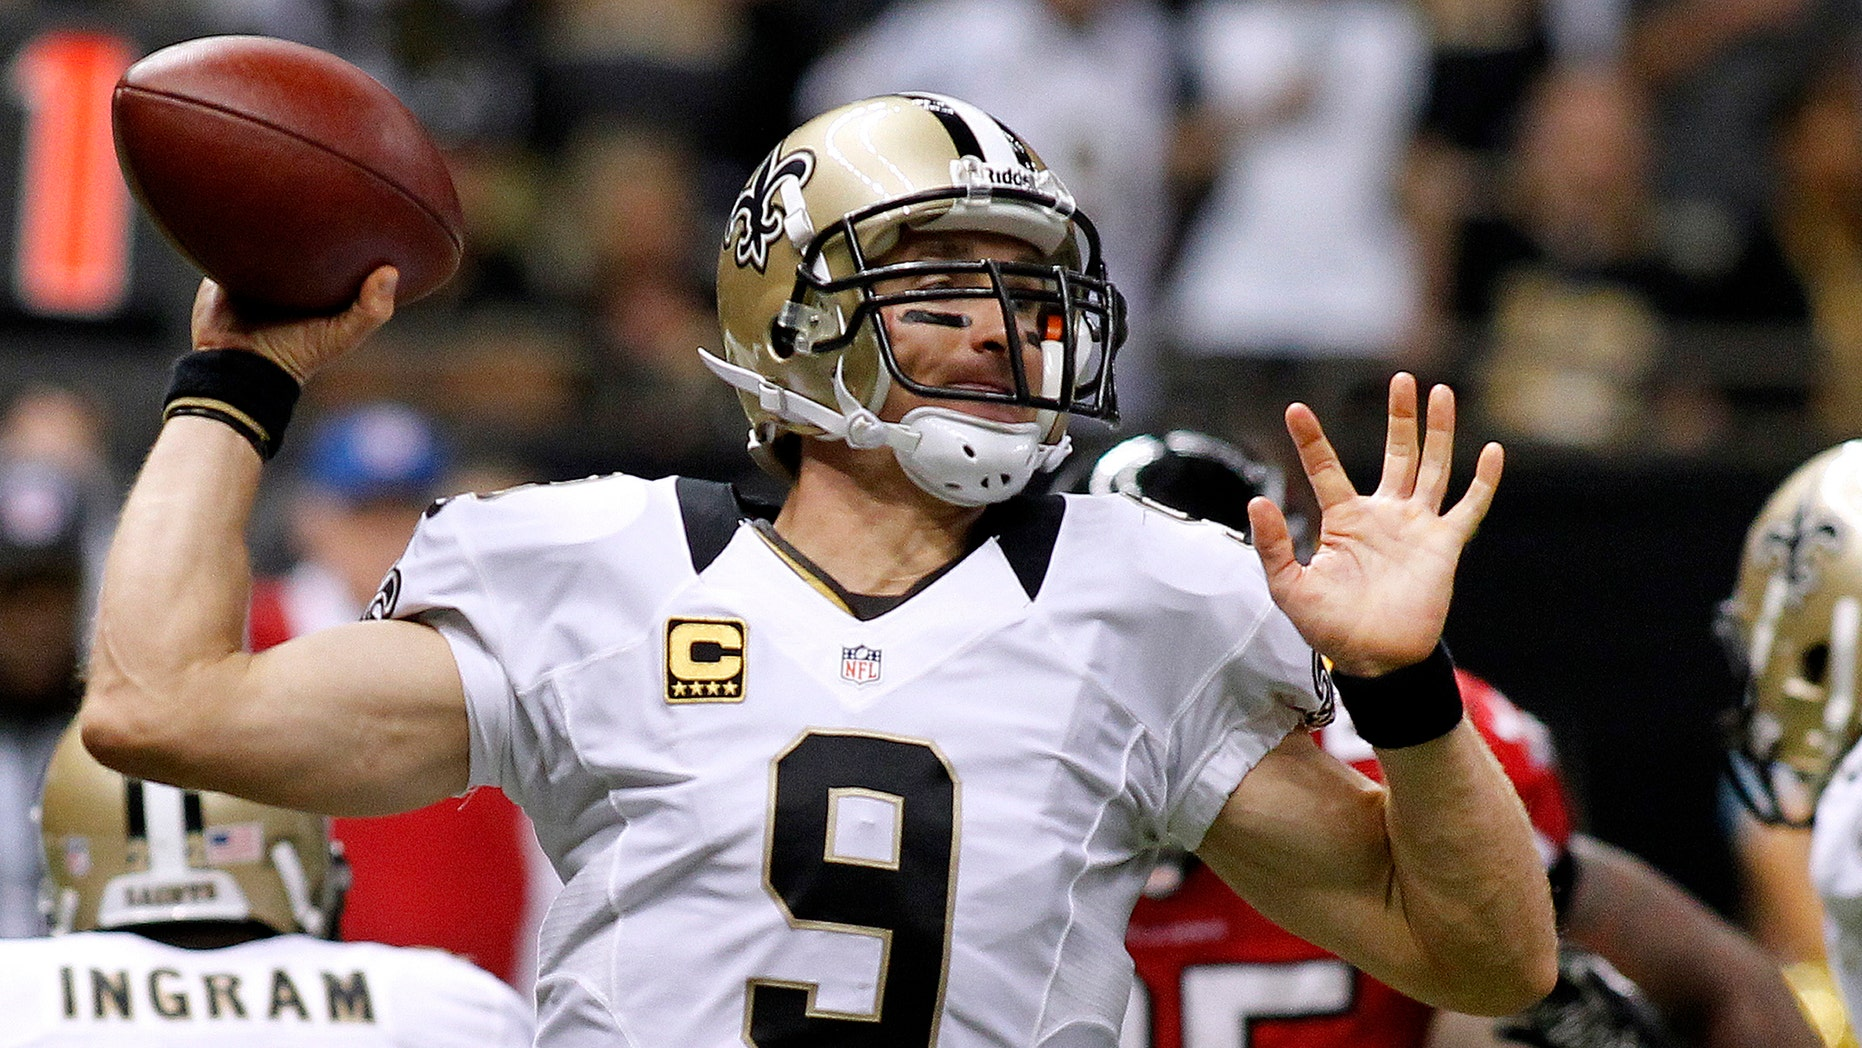 f7db01299 New Orleans Saints quarterback Drew Brees throws the ball during the second  half of their NFL